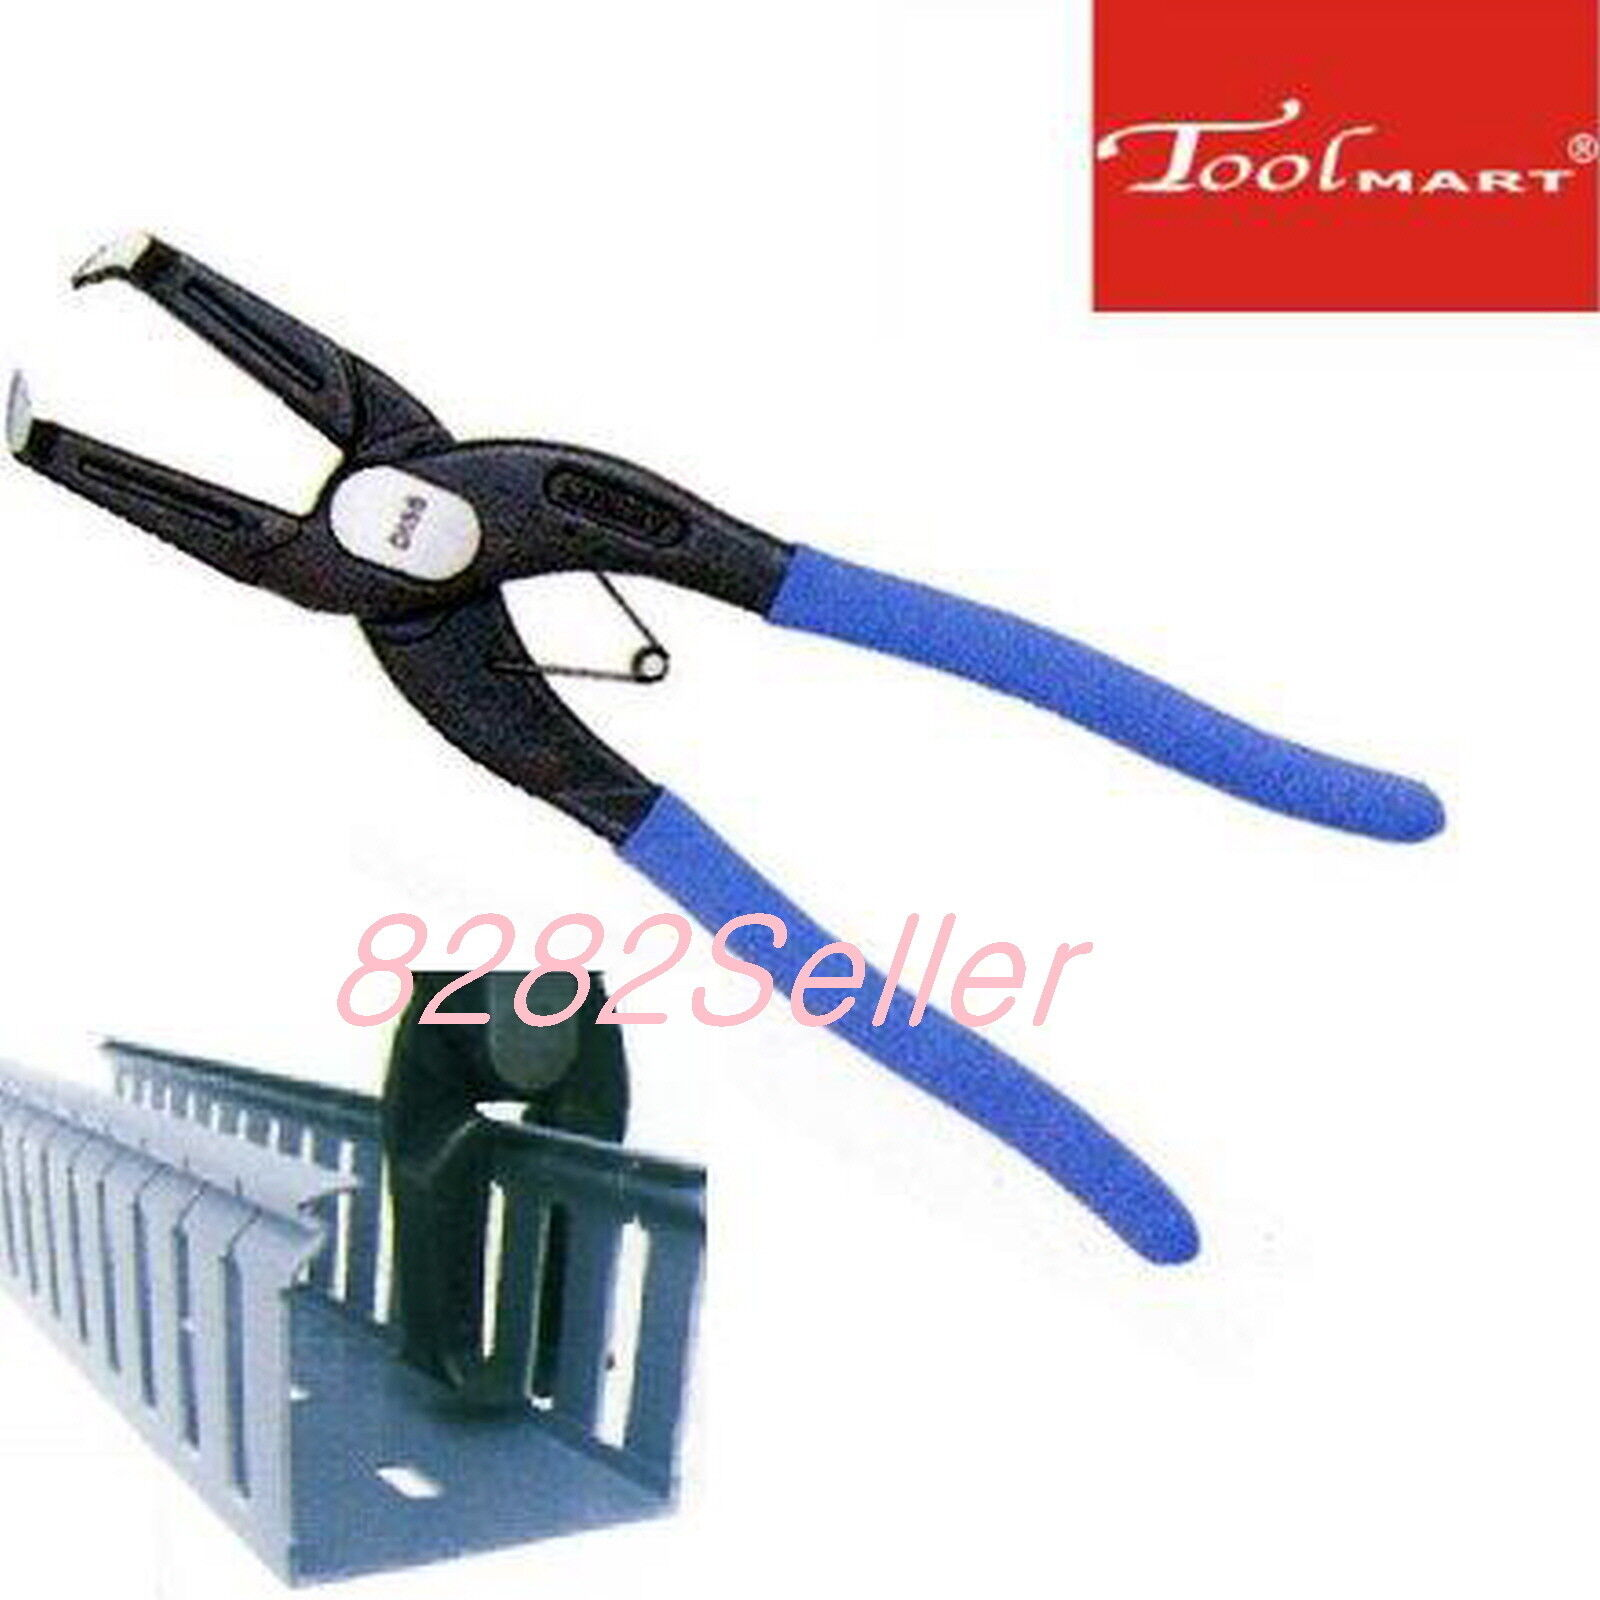 DK55 Blade Hand Held Wiring Nipper Duct Cutter for Plastic MERRY Genuine 55mm